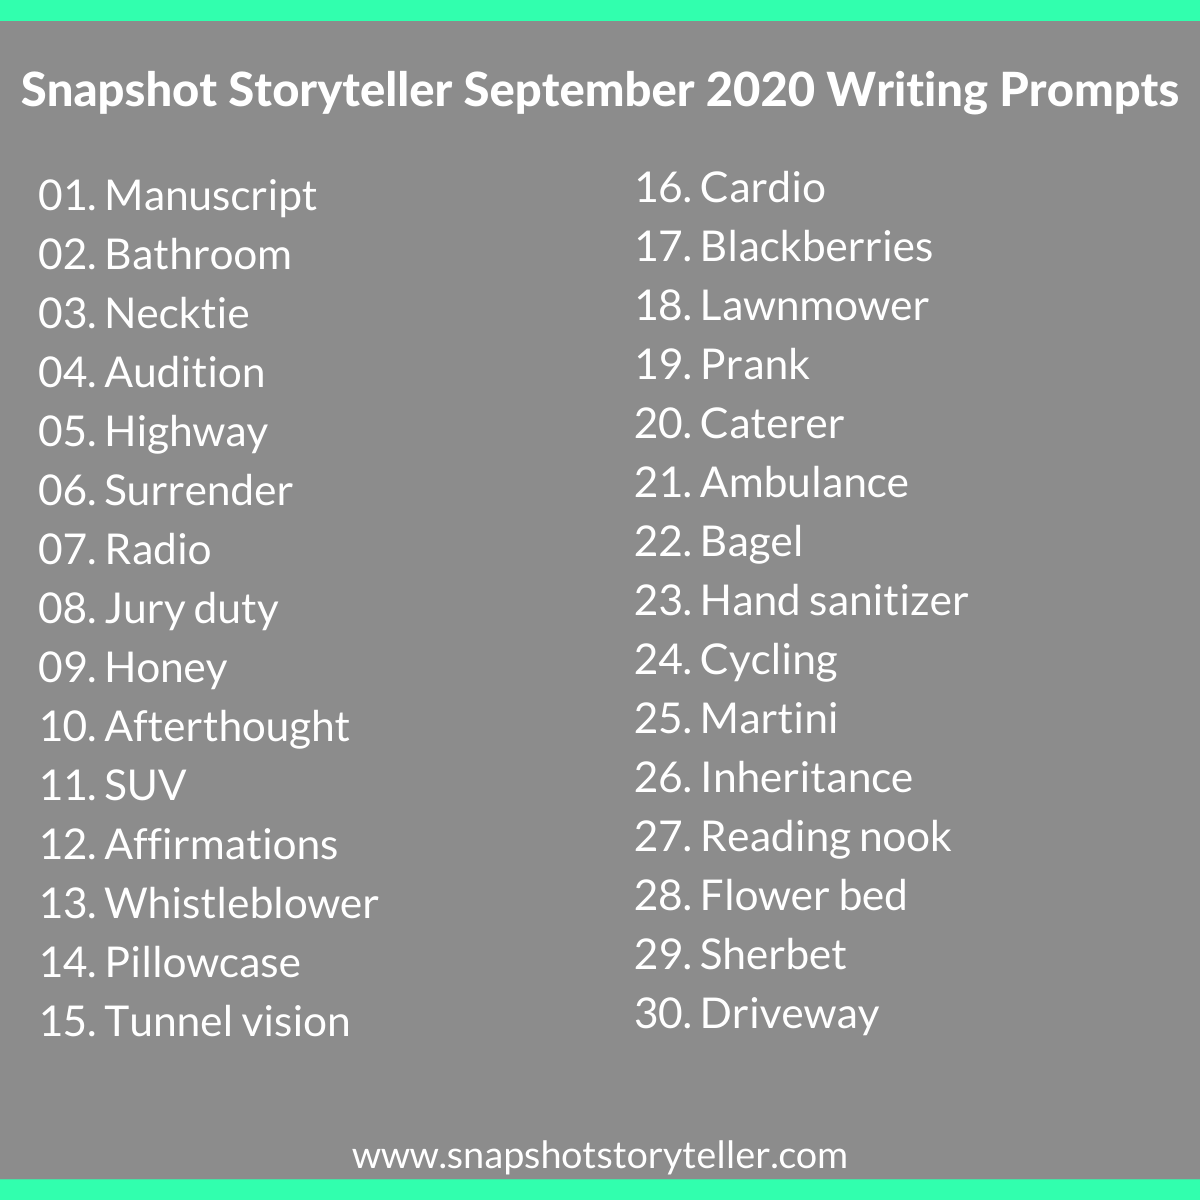 Snapshot Storyteller | September 2020 Writing Prompts | www.snapshotstoryteller.com | #amwriting #SnapshotStoryteller #creativestoryteller #creative #storyteller #creativewriter #IWrite  #WriteOn #writersofinstagram #writingprompt #writingprompts